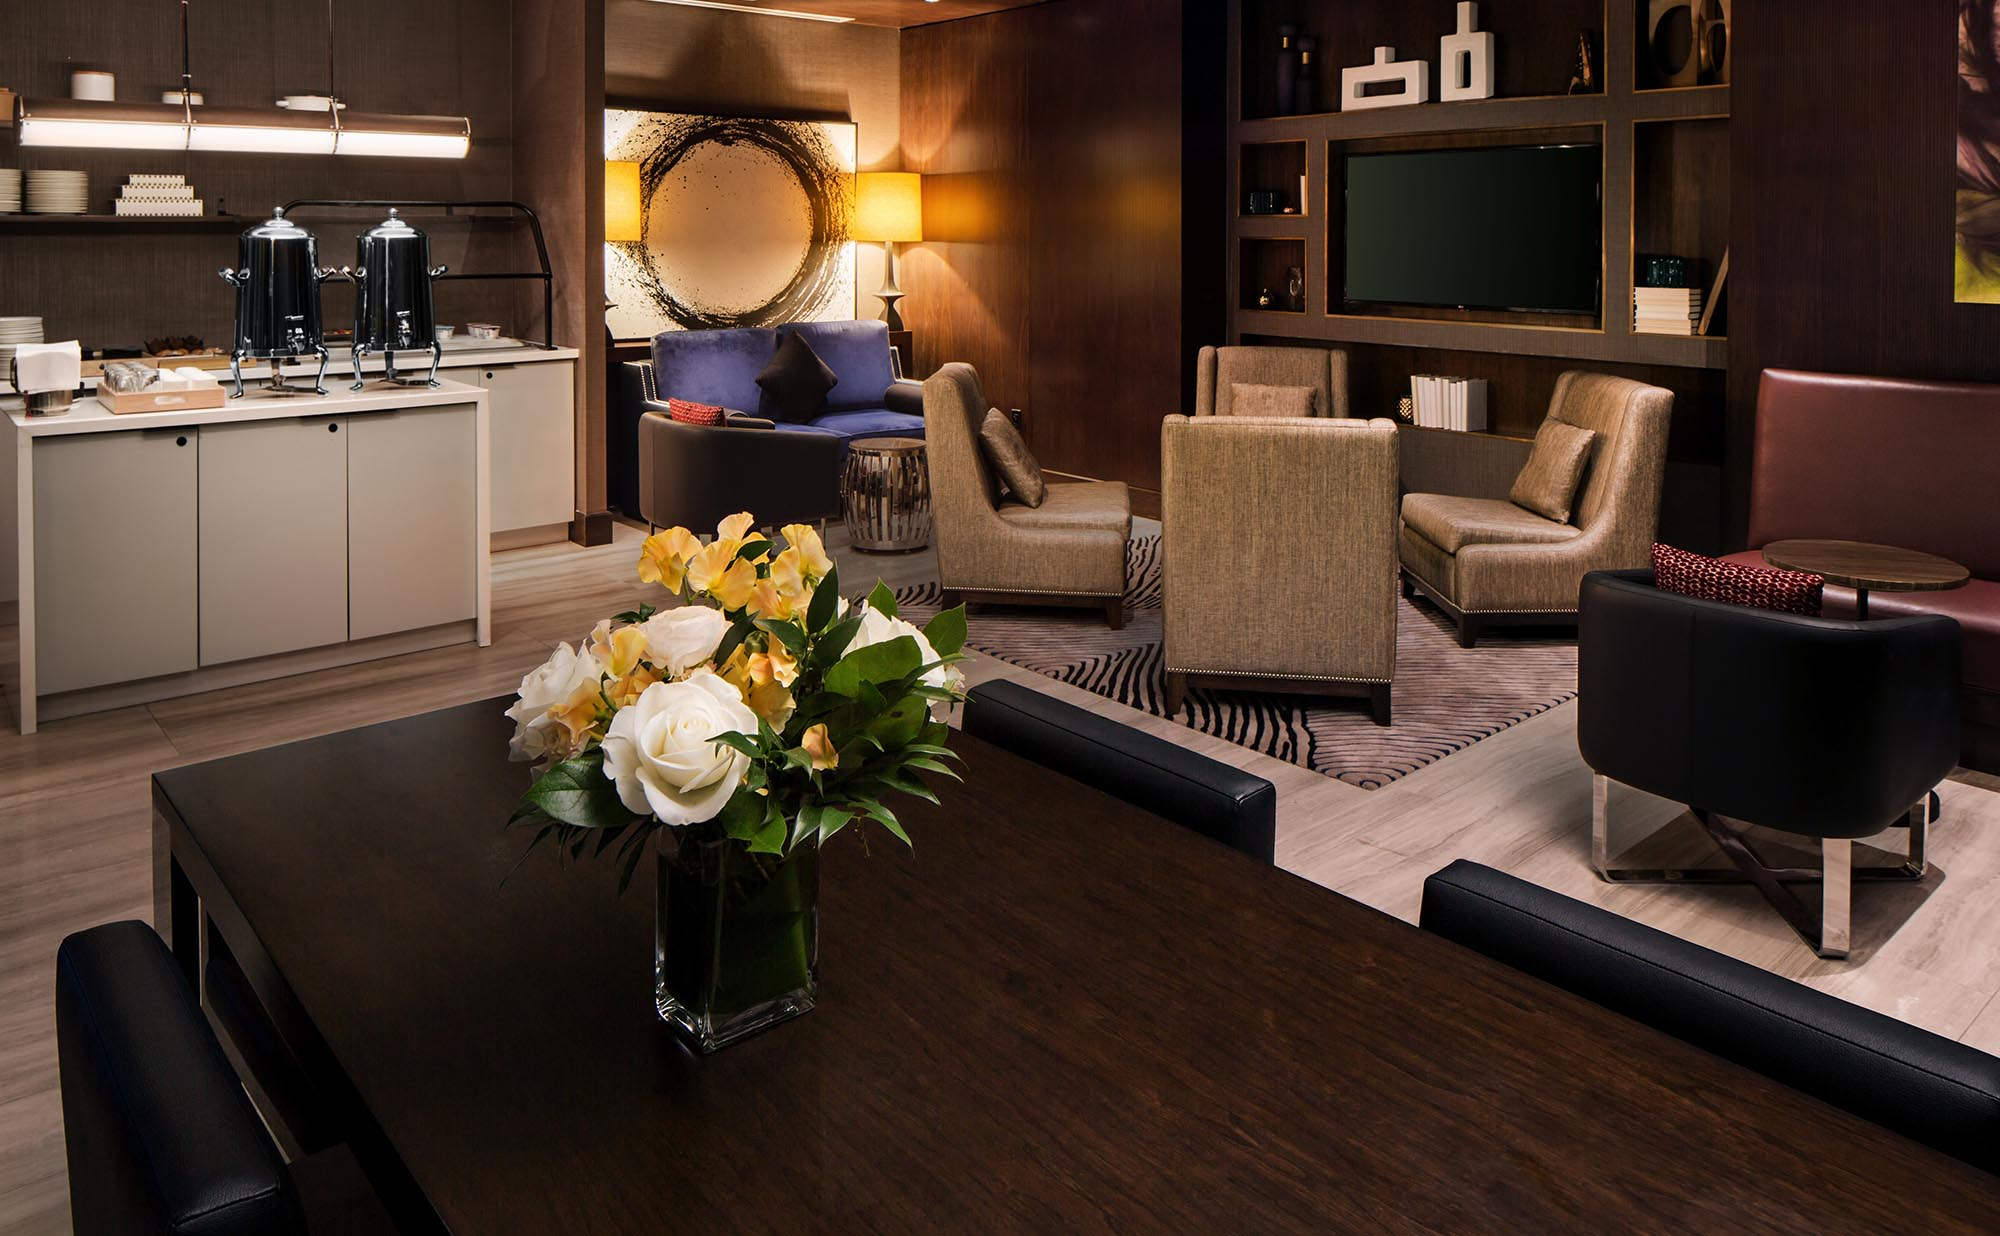 the living room steakhouse lounge brooklyn ny images of interior designs nagpurentrepreneurs conceptstructuresllccom